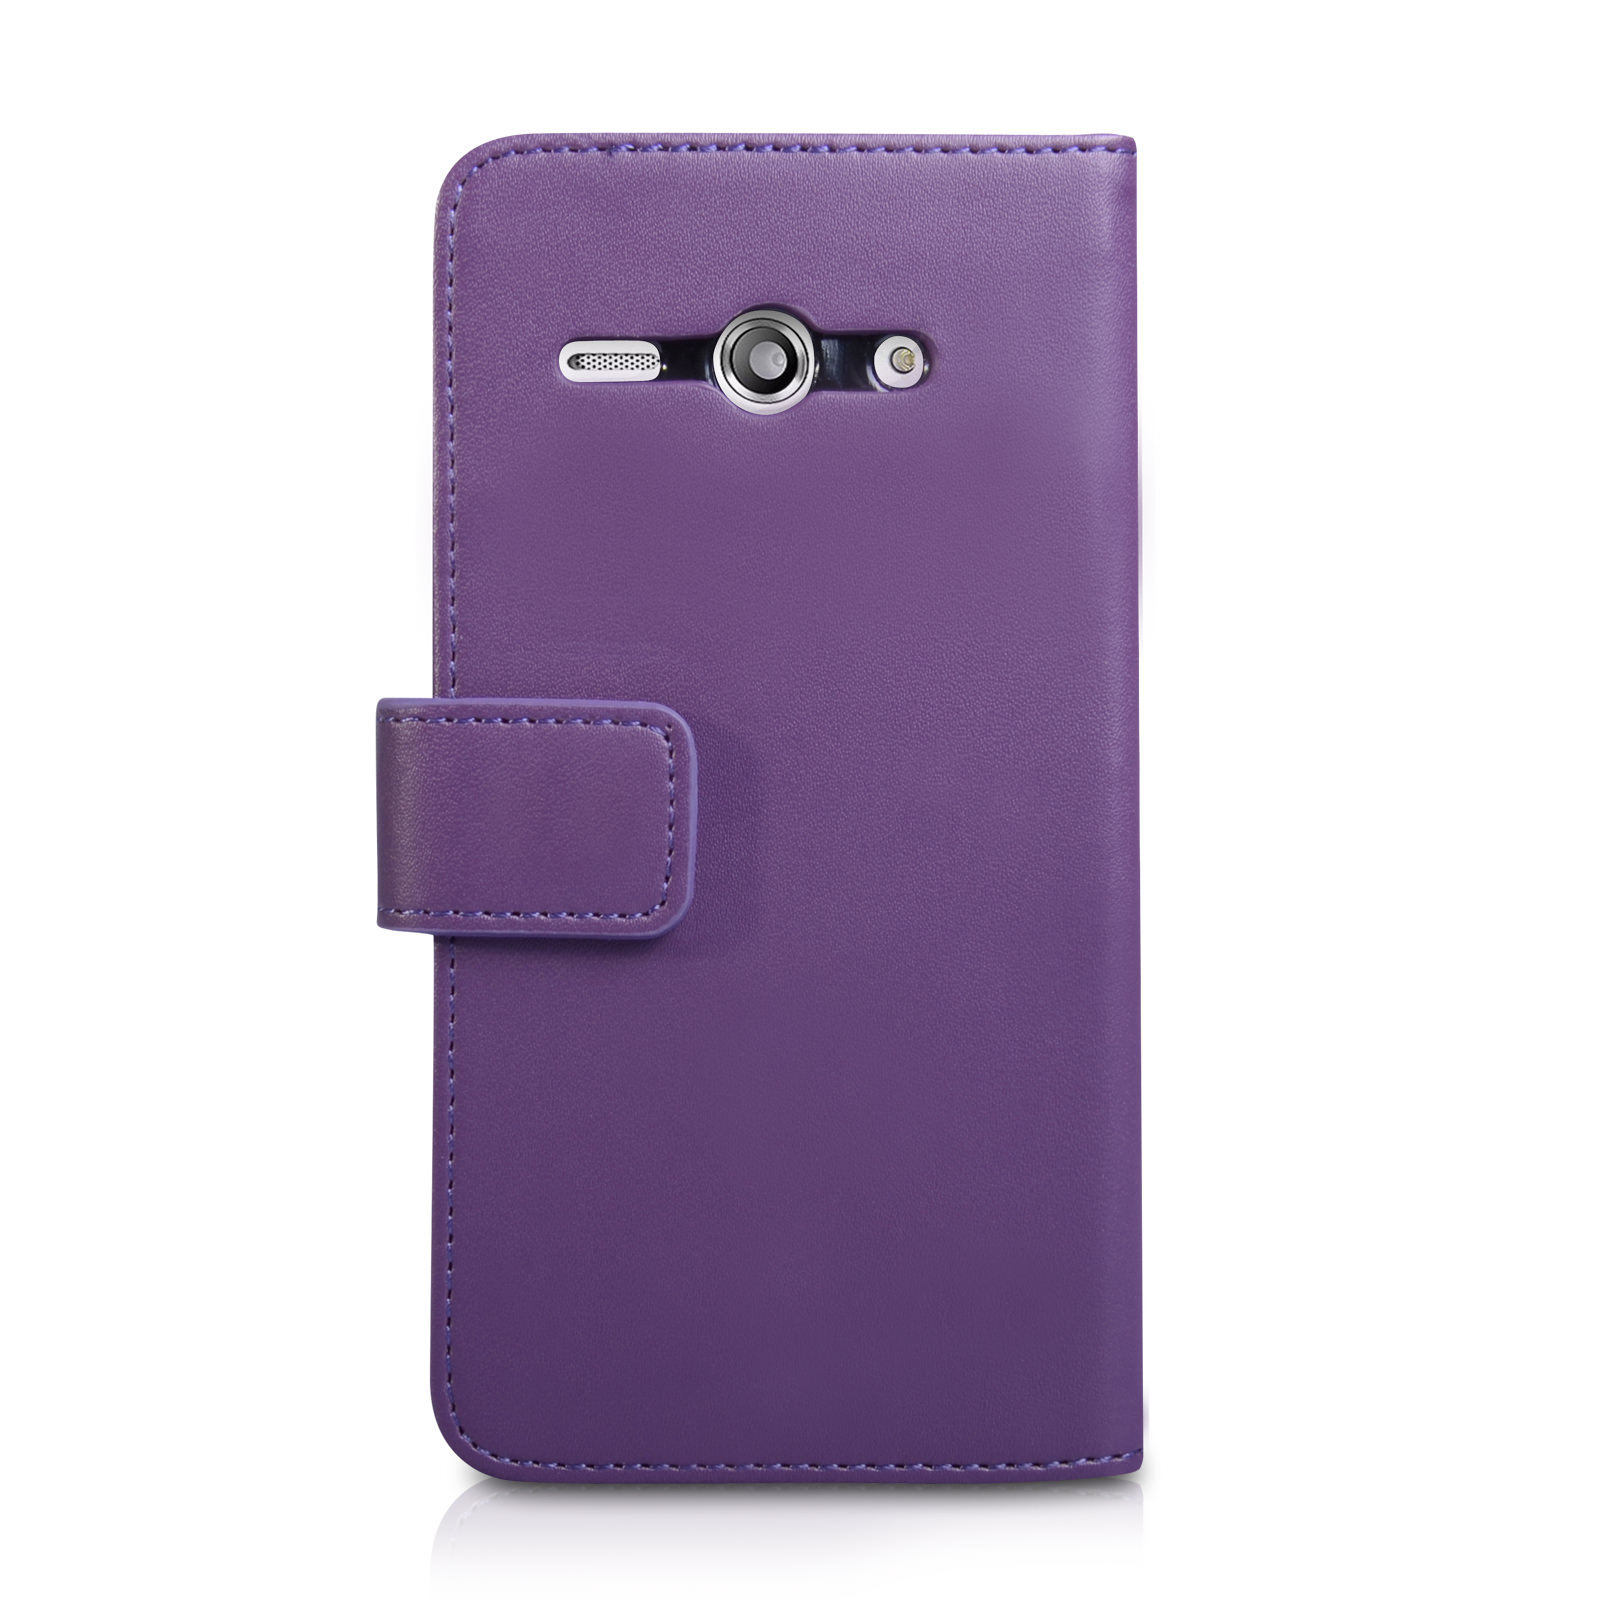 YouSave Huawei Ascend Y530 Leather-Effect Wallet Case - Purple